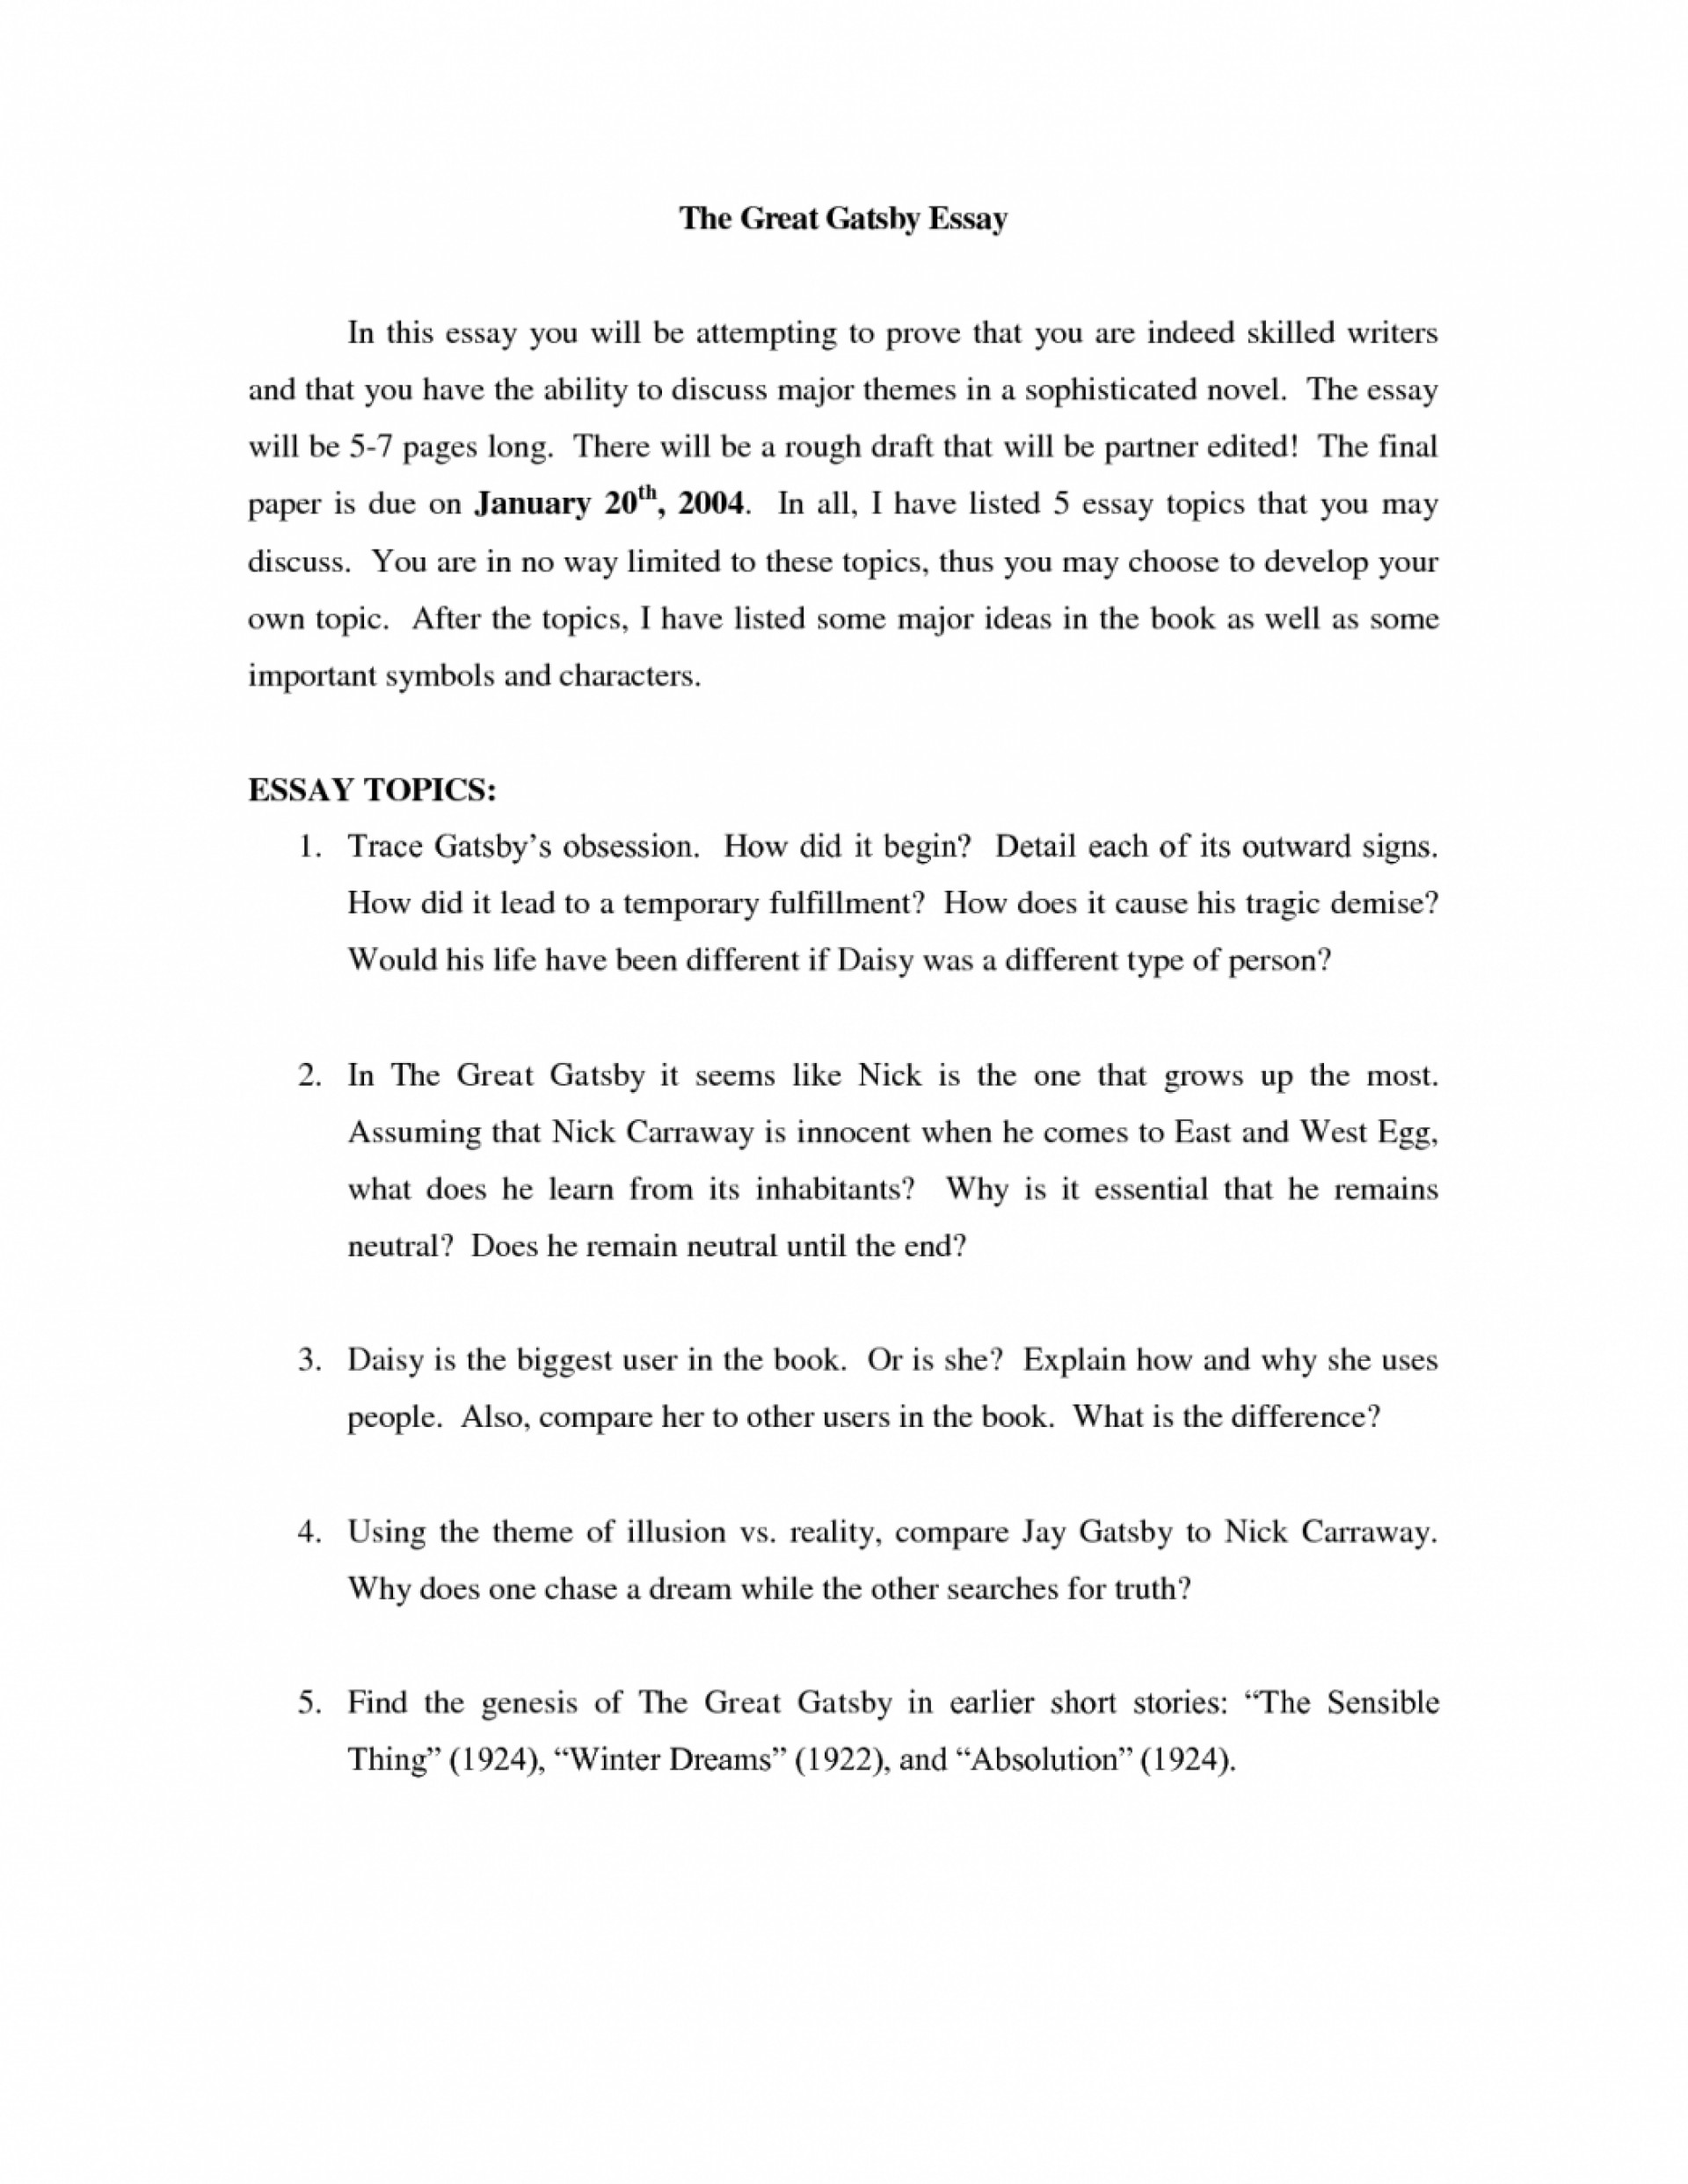 014 Essay Example On American Dreamt Gatsby Thesis The Future Is Still Possible Argumentative Statement For Template 4ni Attainable Argument Prompt Alive Research About Topics 1048x1356 Fantastic Great Dream Conclusion Pdf Free 1920